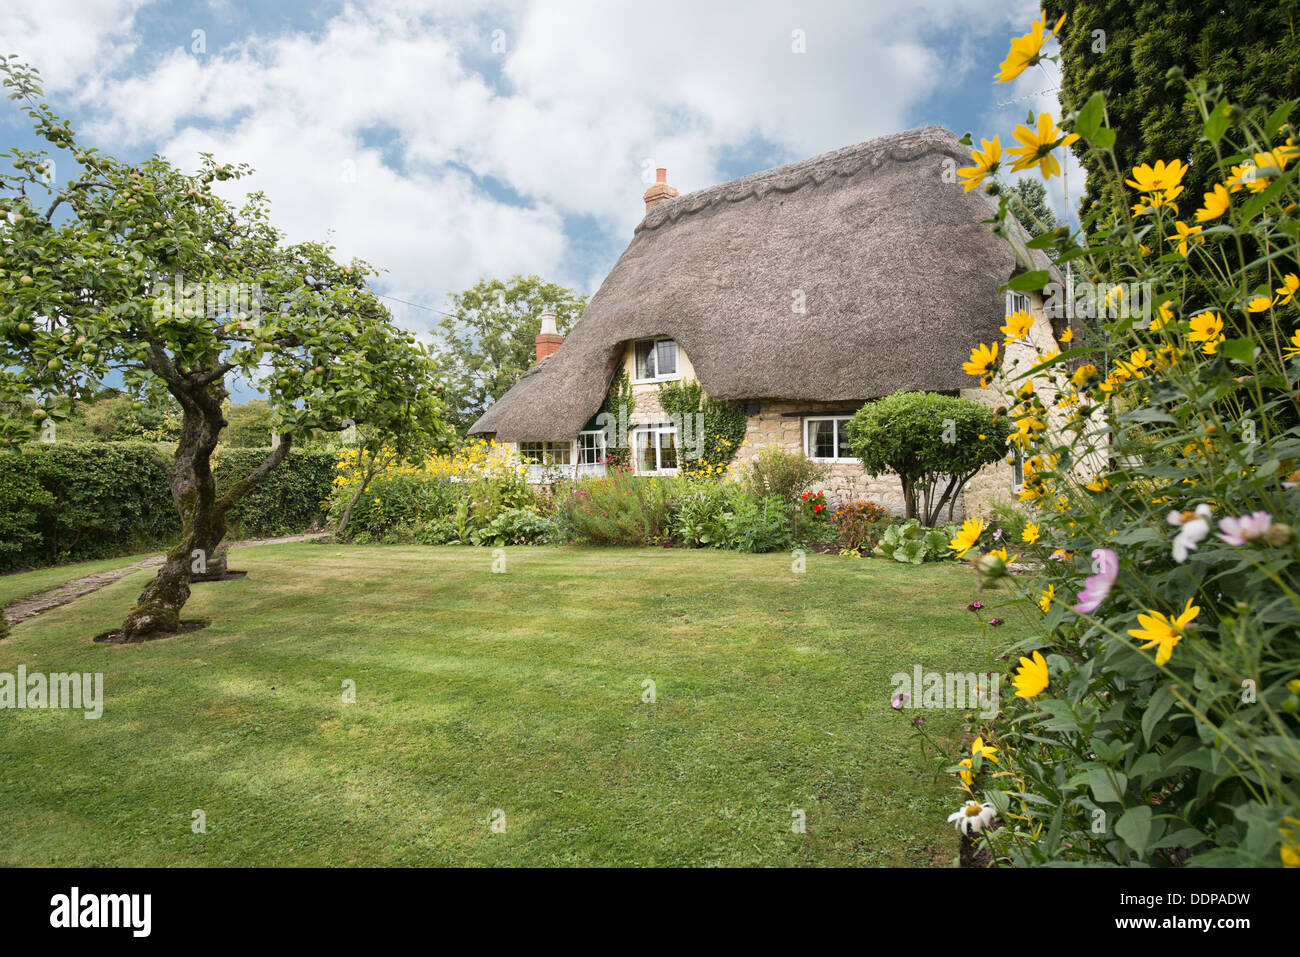 A beautiful traditional English country cottage with thatched roof & pretty garden in Purton, Wiltshire, UK - Stock Image